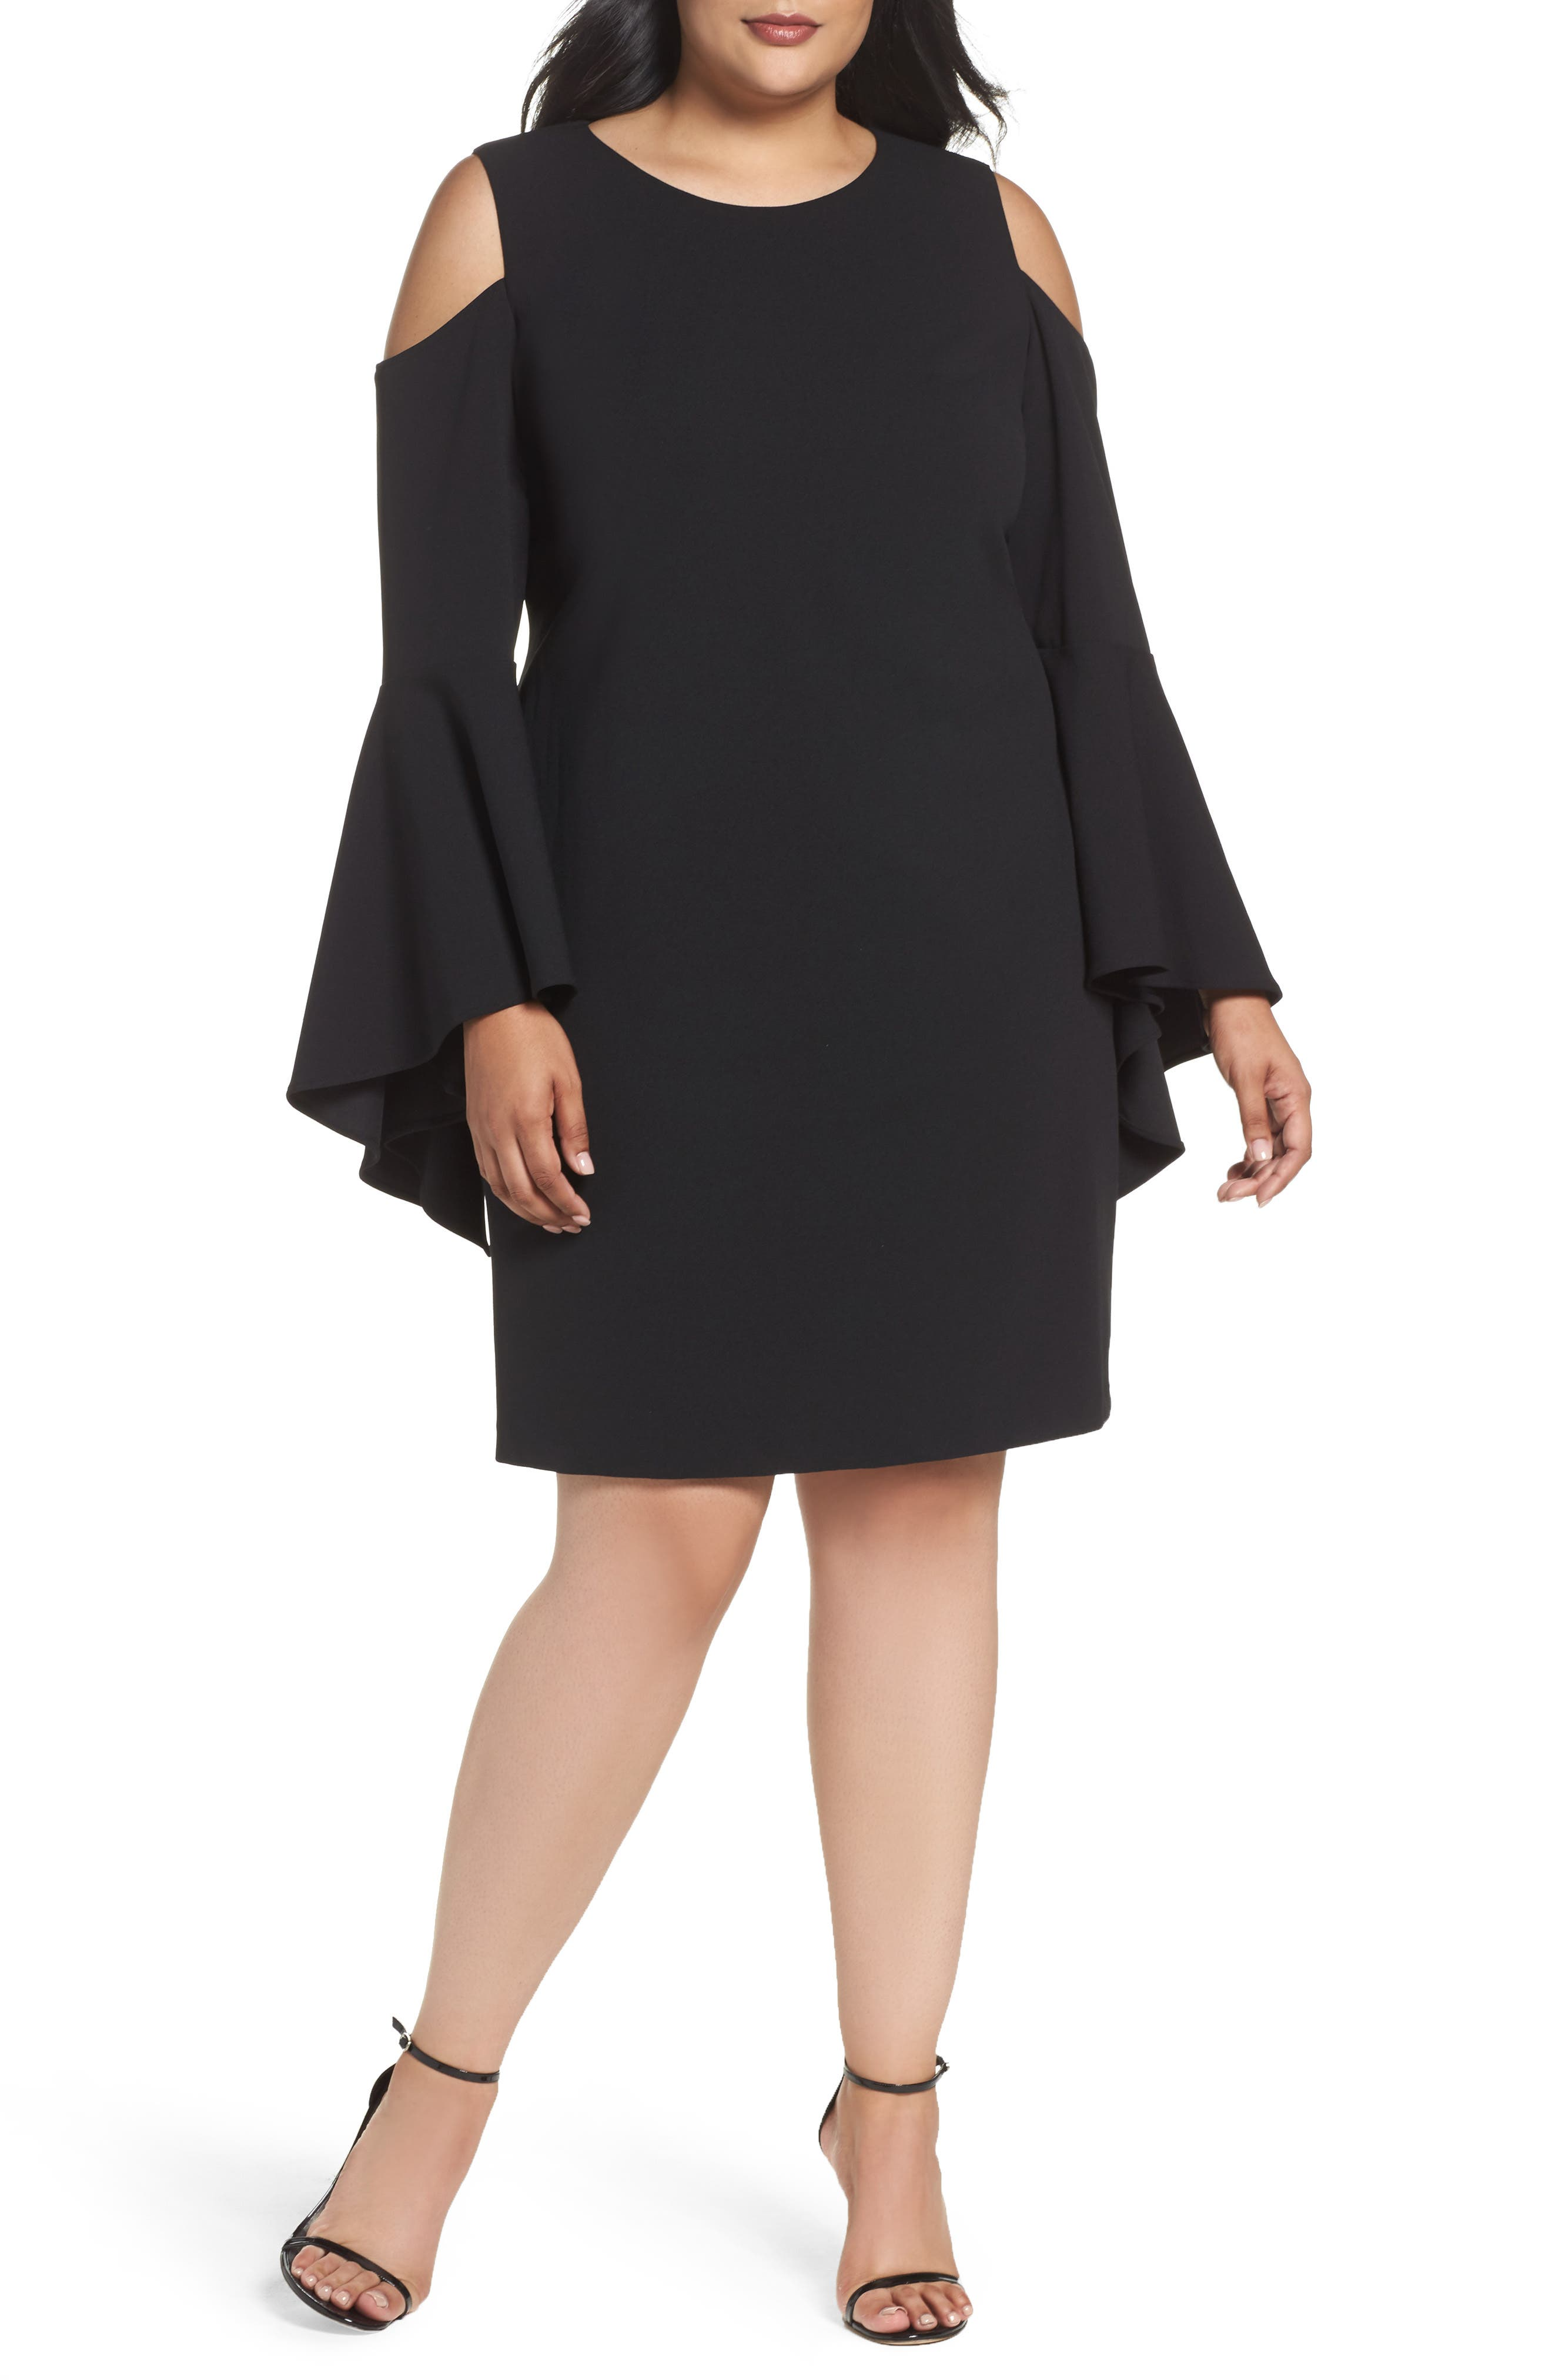 Alternate Image 1 Selected - Vince Camuto Flounce Cuff Cold Shoulder Dress (Plus Size)